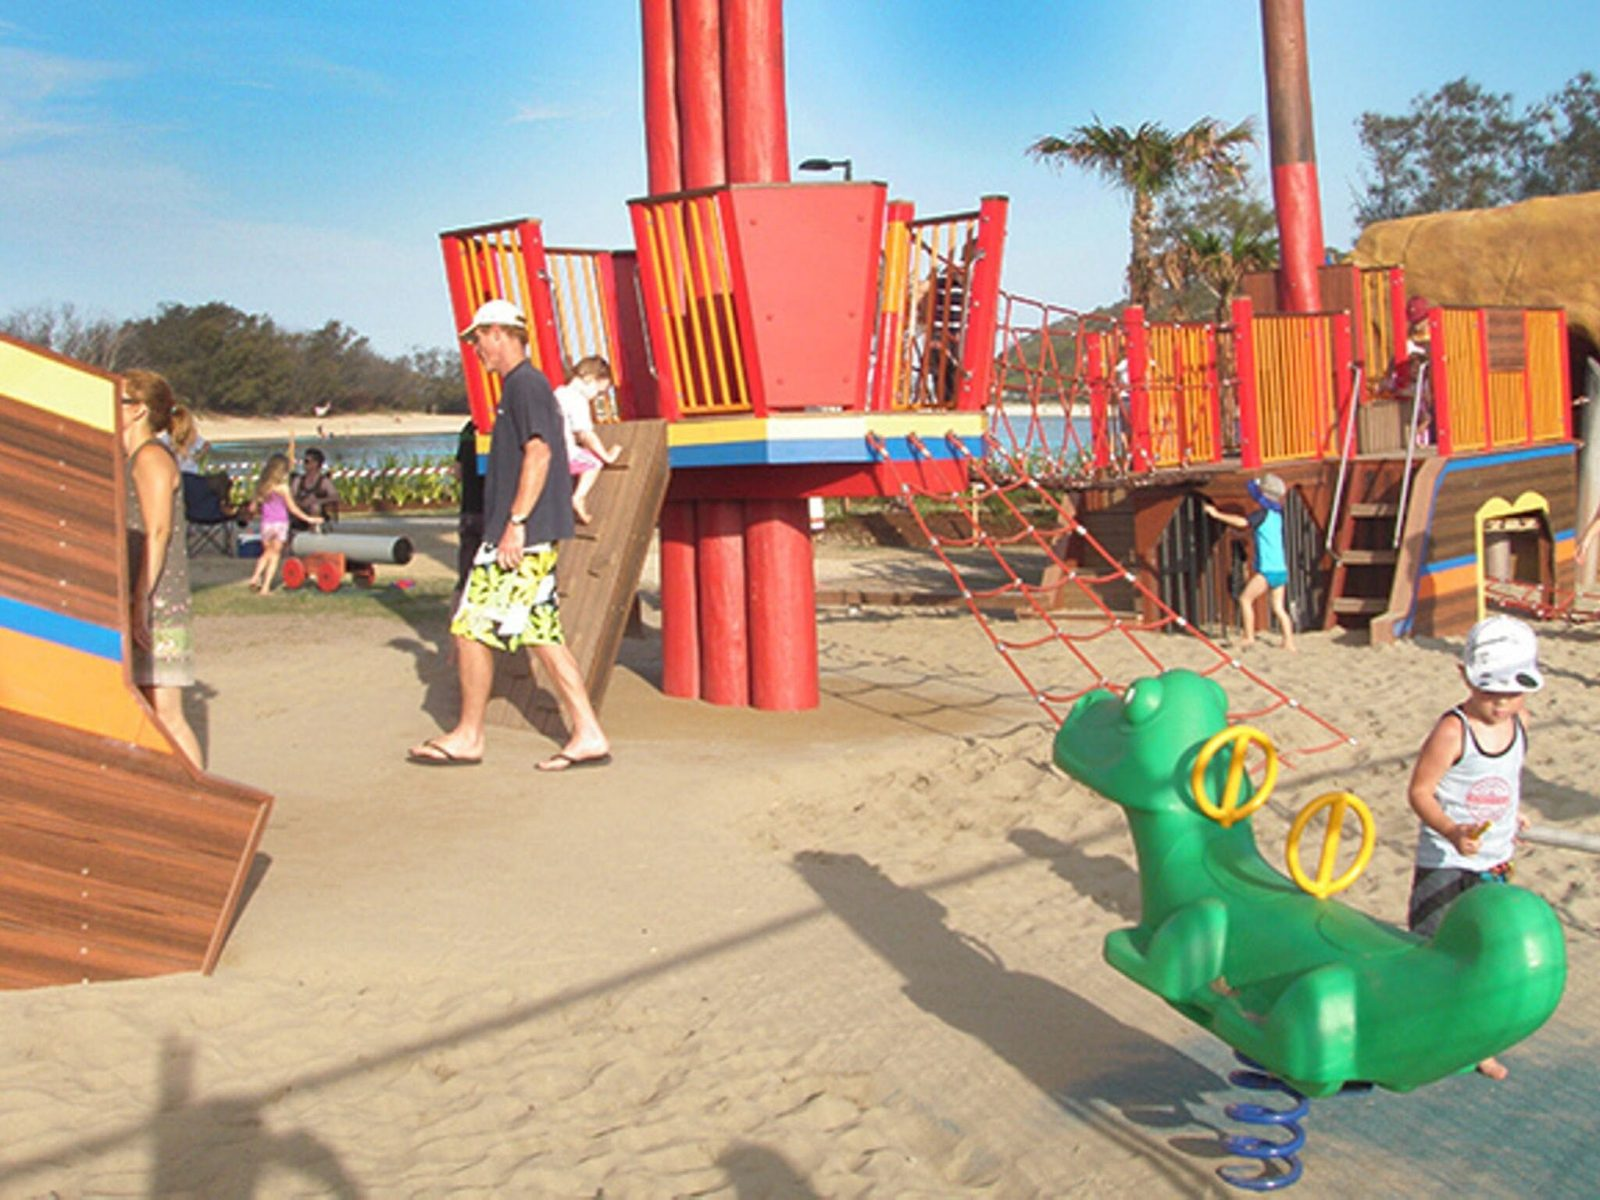 Children playing on gym equipment at the Palm Beach parklands